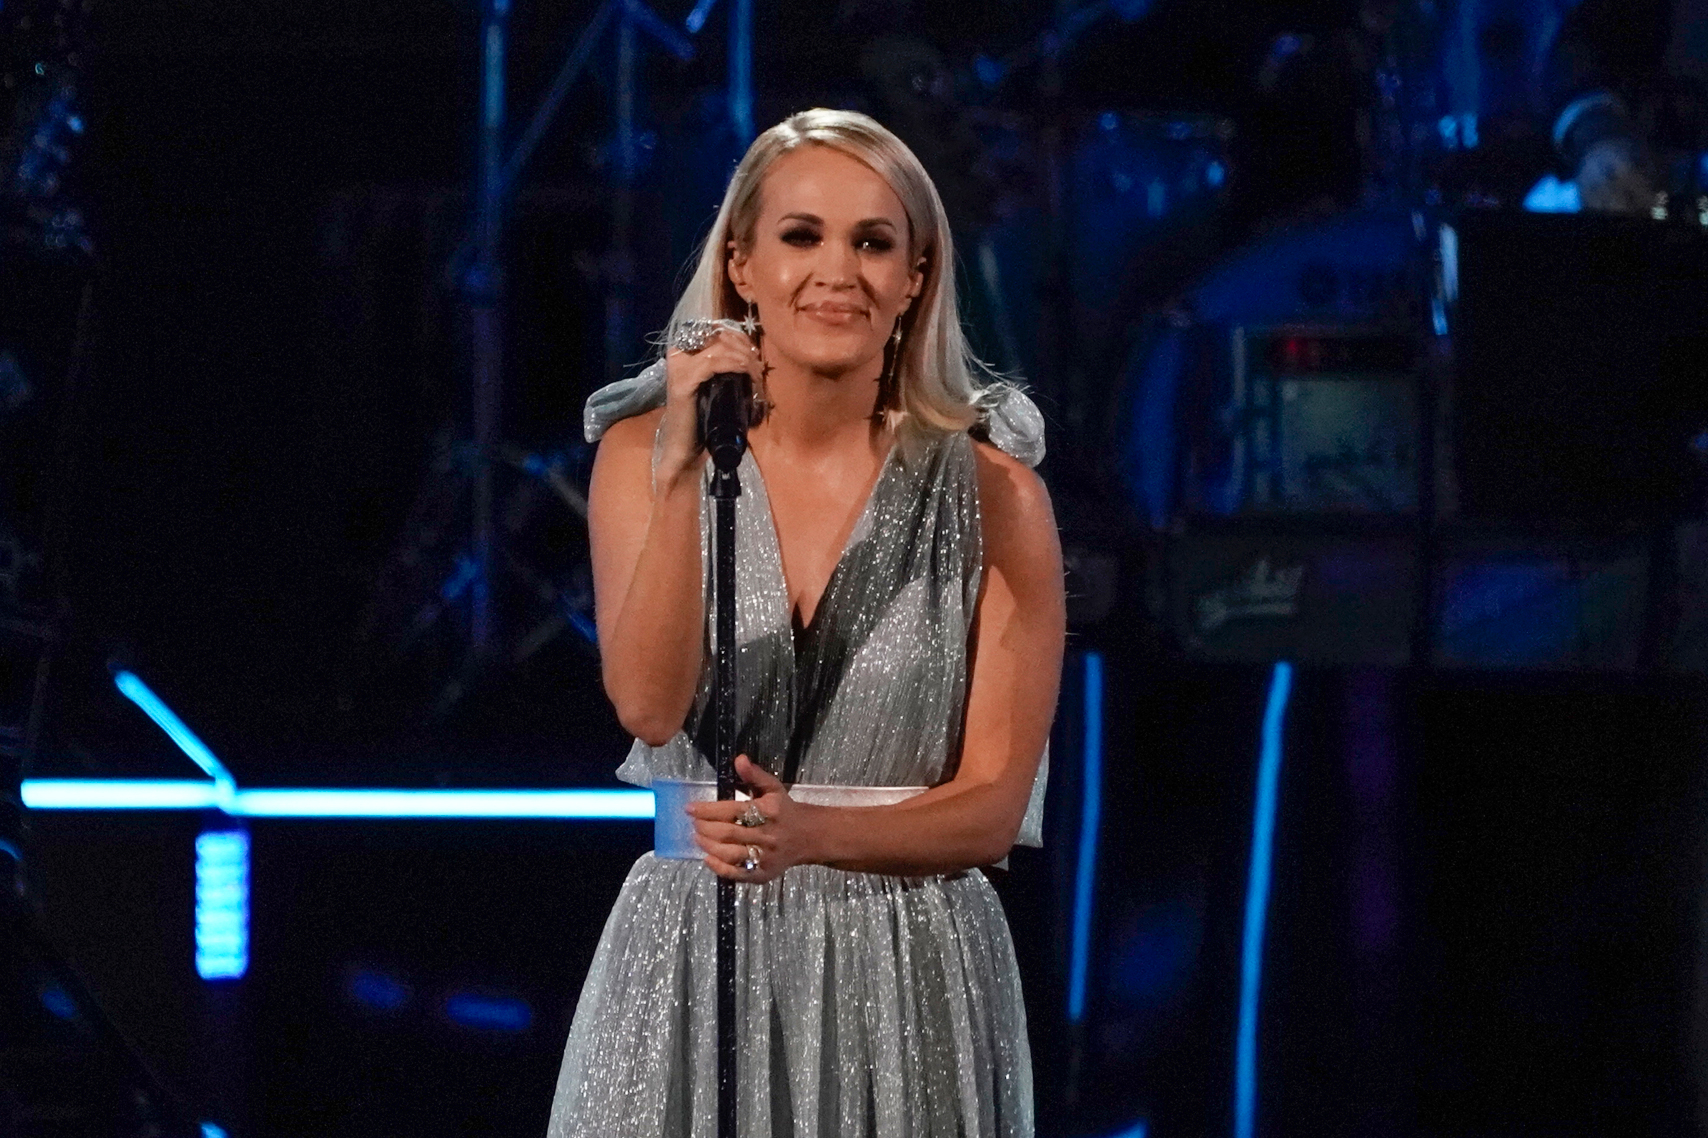 Carrie Underwood Sings for Linda Ronstadt at Kennedy Center Honors - Rolling Stone